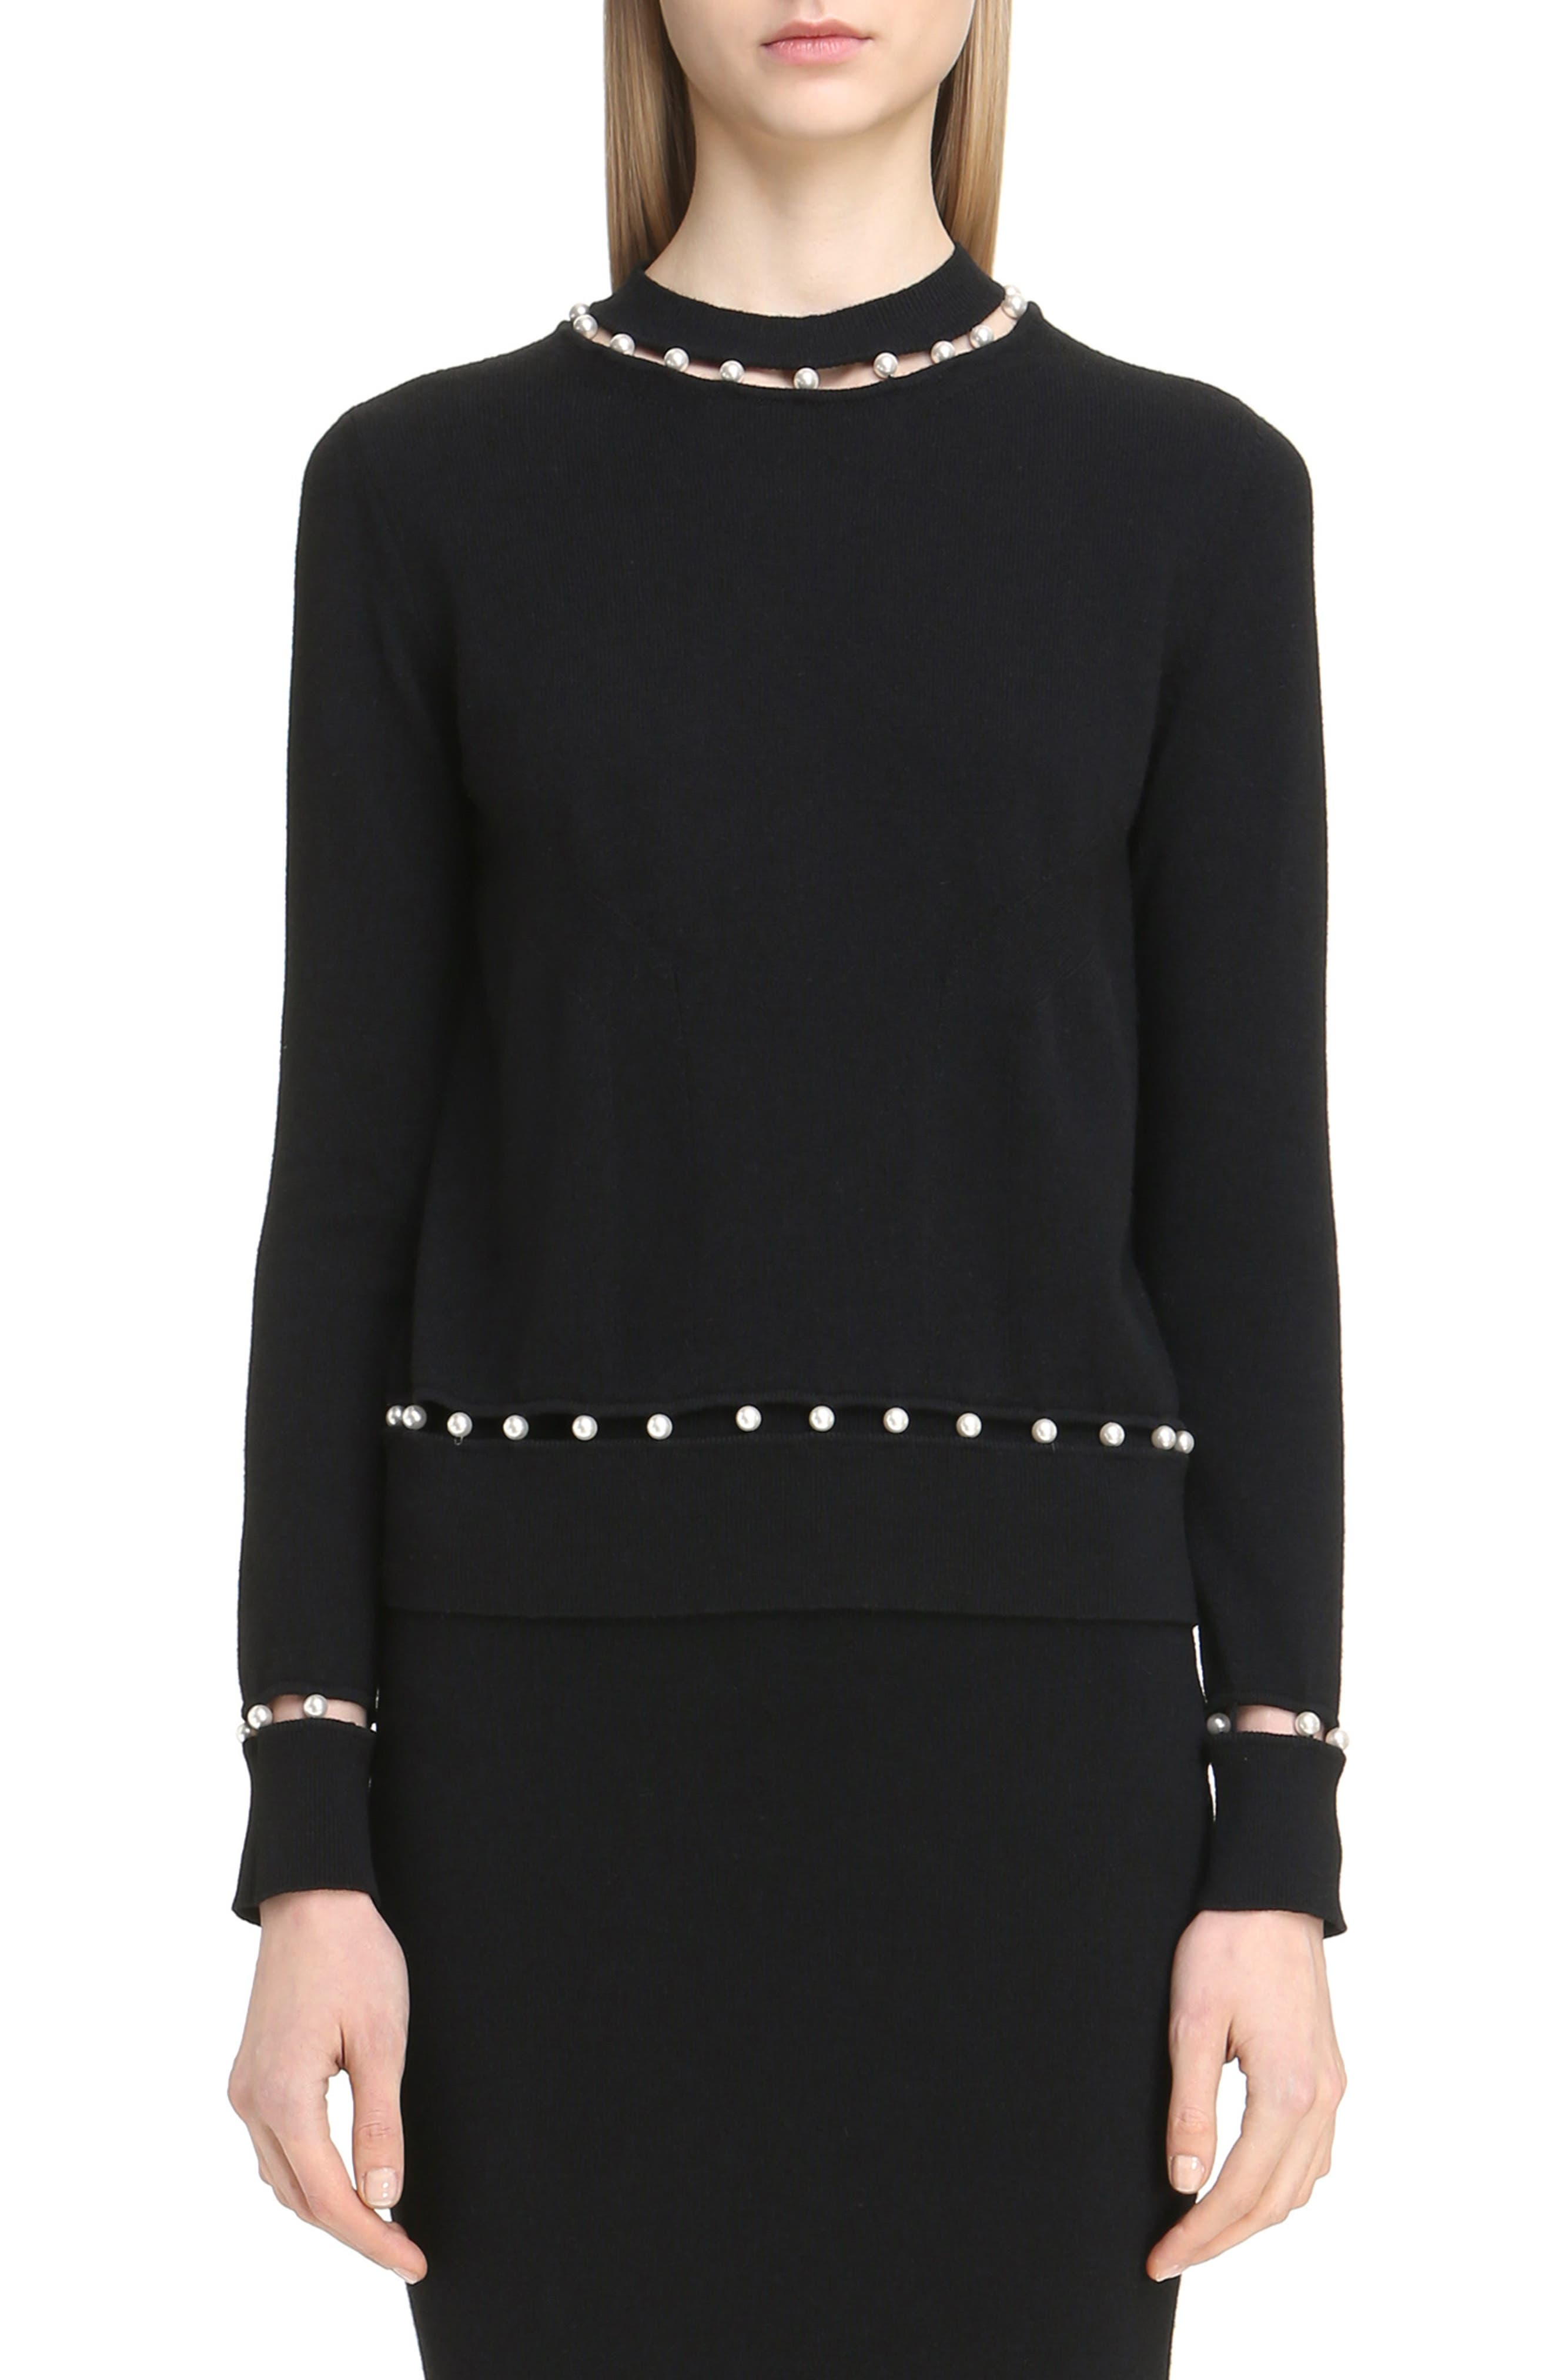 Givenchy Imitation Pearl Inset Wool Blend Sweater